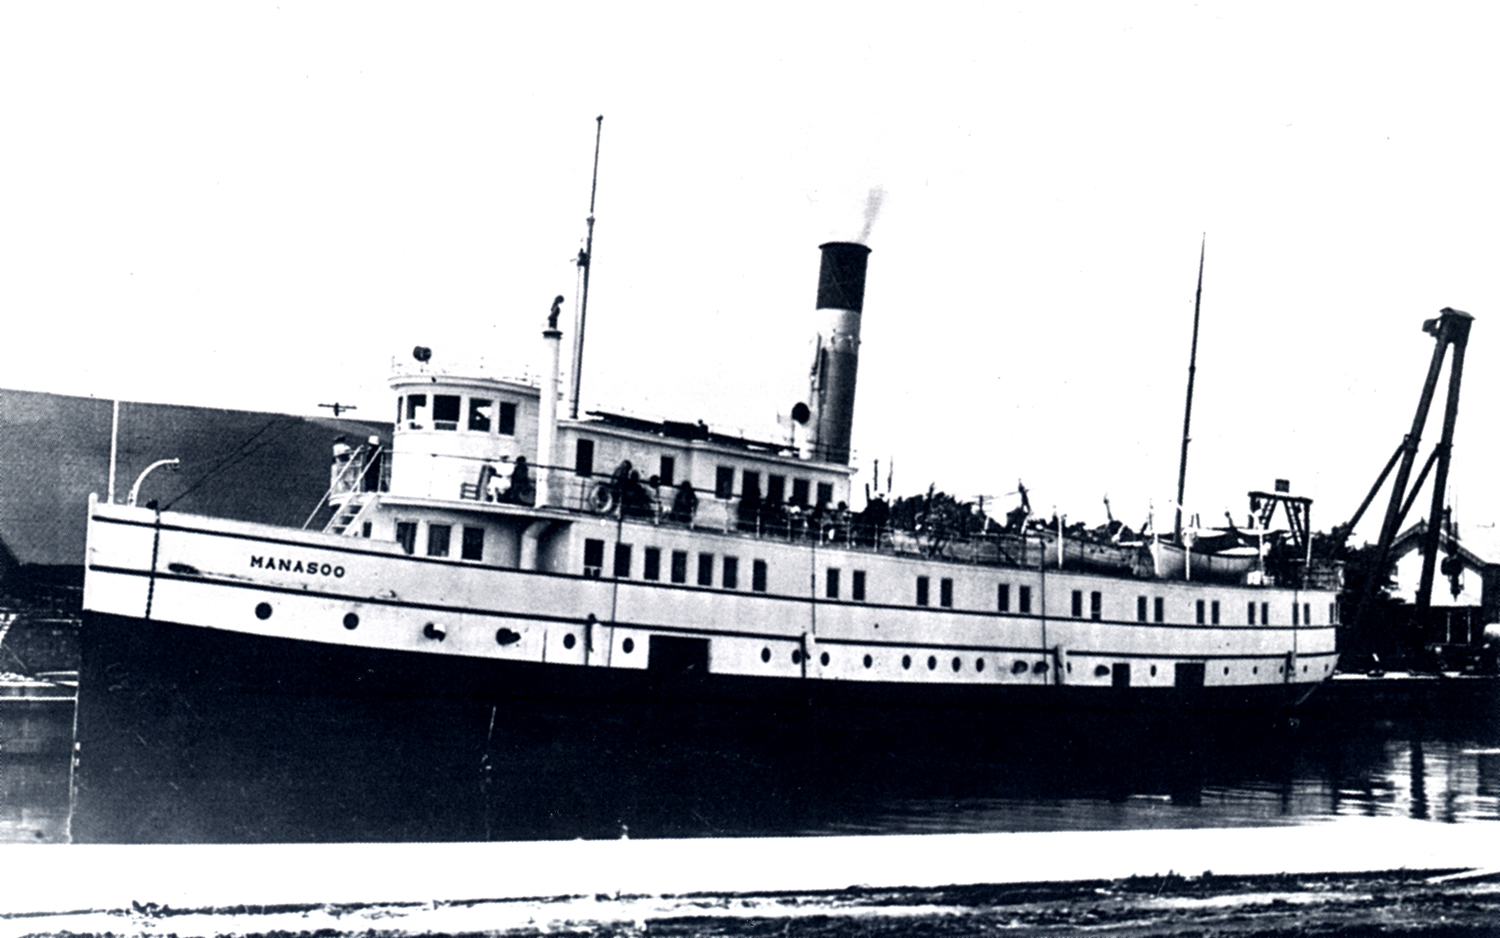 Renamed the MANASOO early in 1928, this ship sank in Georgian Bay on what was planned to be its final run of that season. Only five people survived from the 21 on board the ship